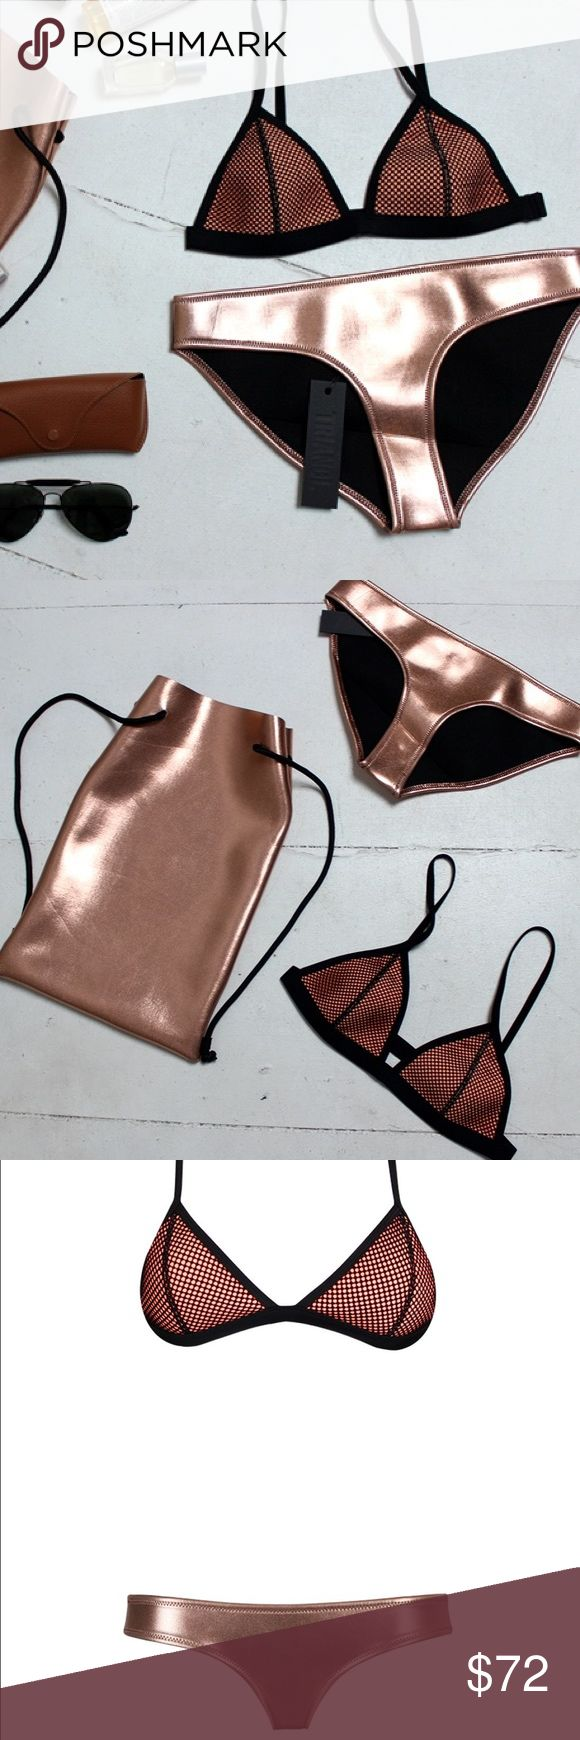 OLLIE Triangl bikini!! Brand new Triangl bikini in gold! Selling for a friend so it's not in stock yet. Both top and bottom are size small. triangl swimwear Swim Bikinis